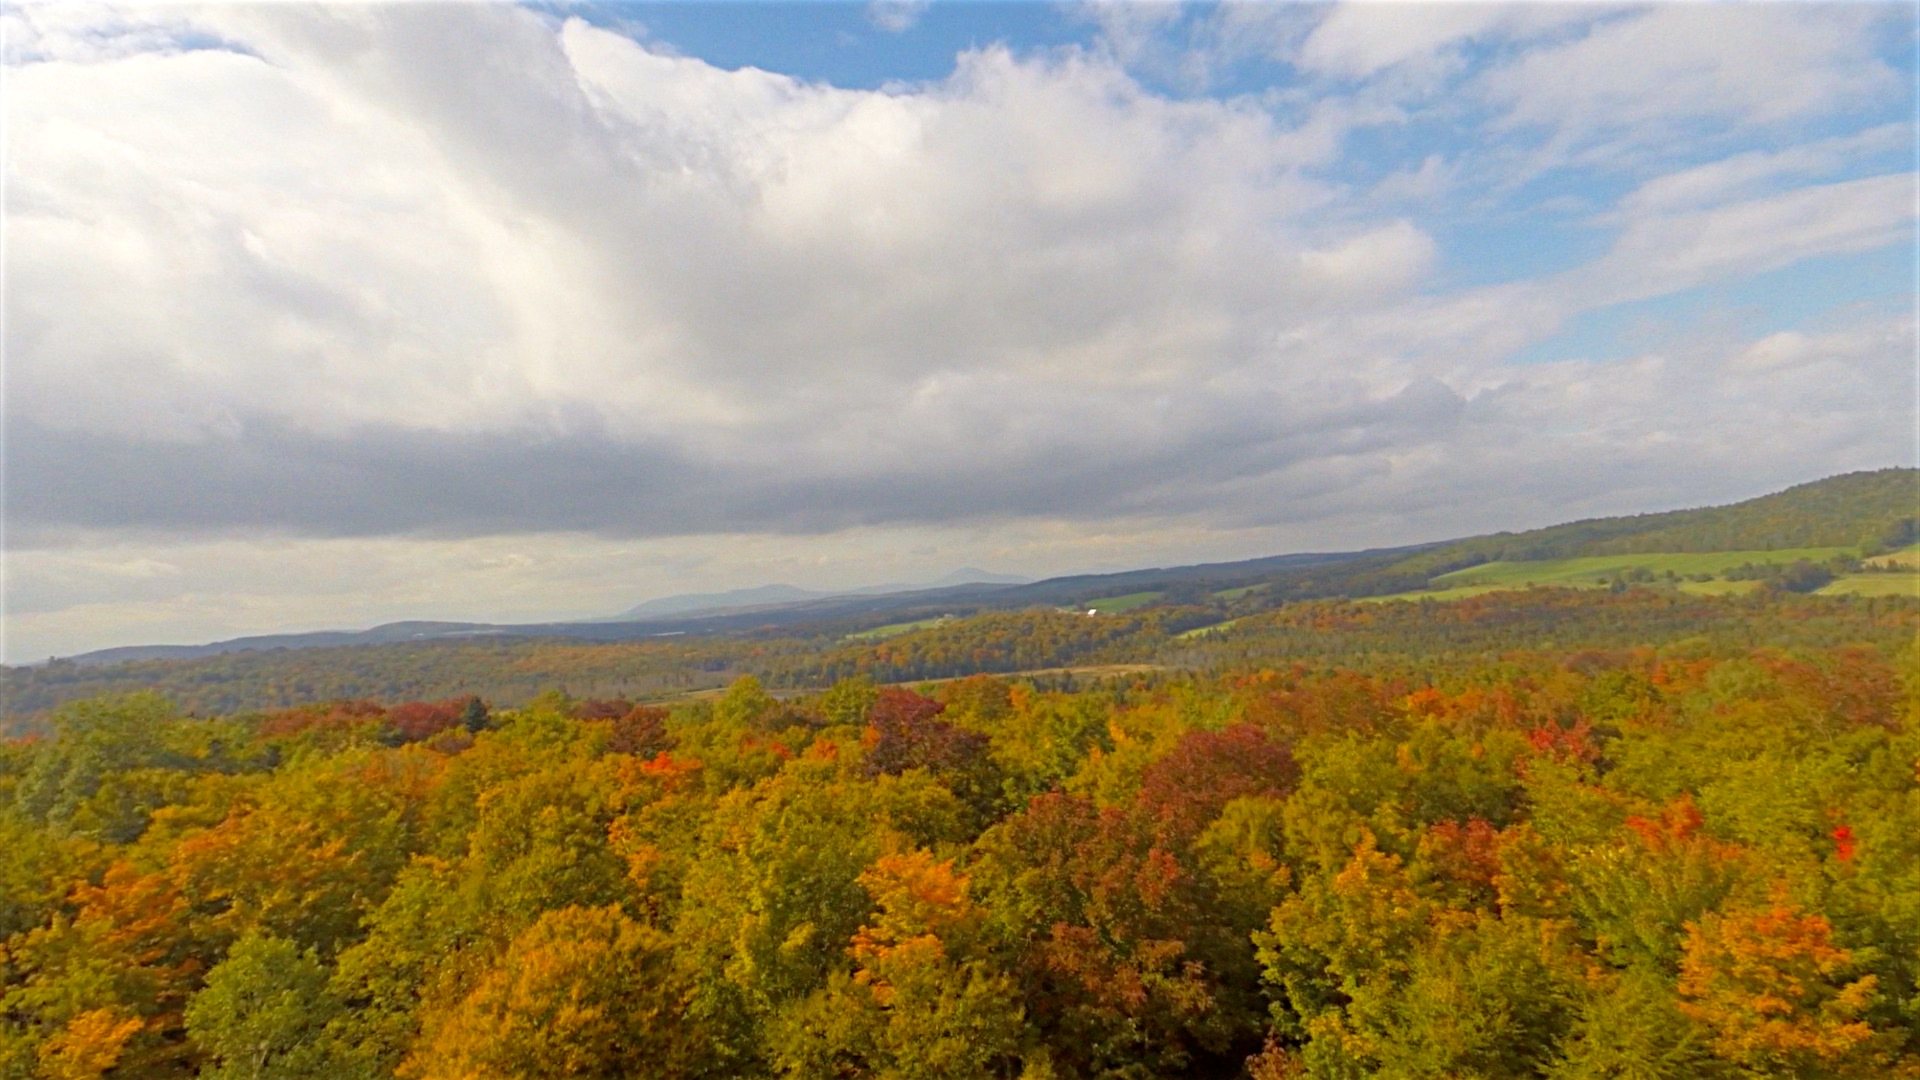 Foliage Color around Morgan, September 23rd, 2014